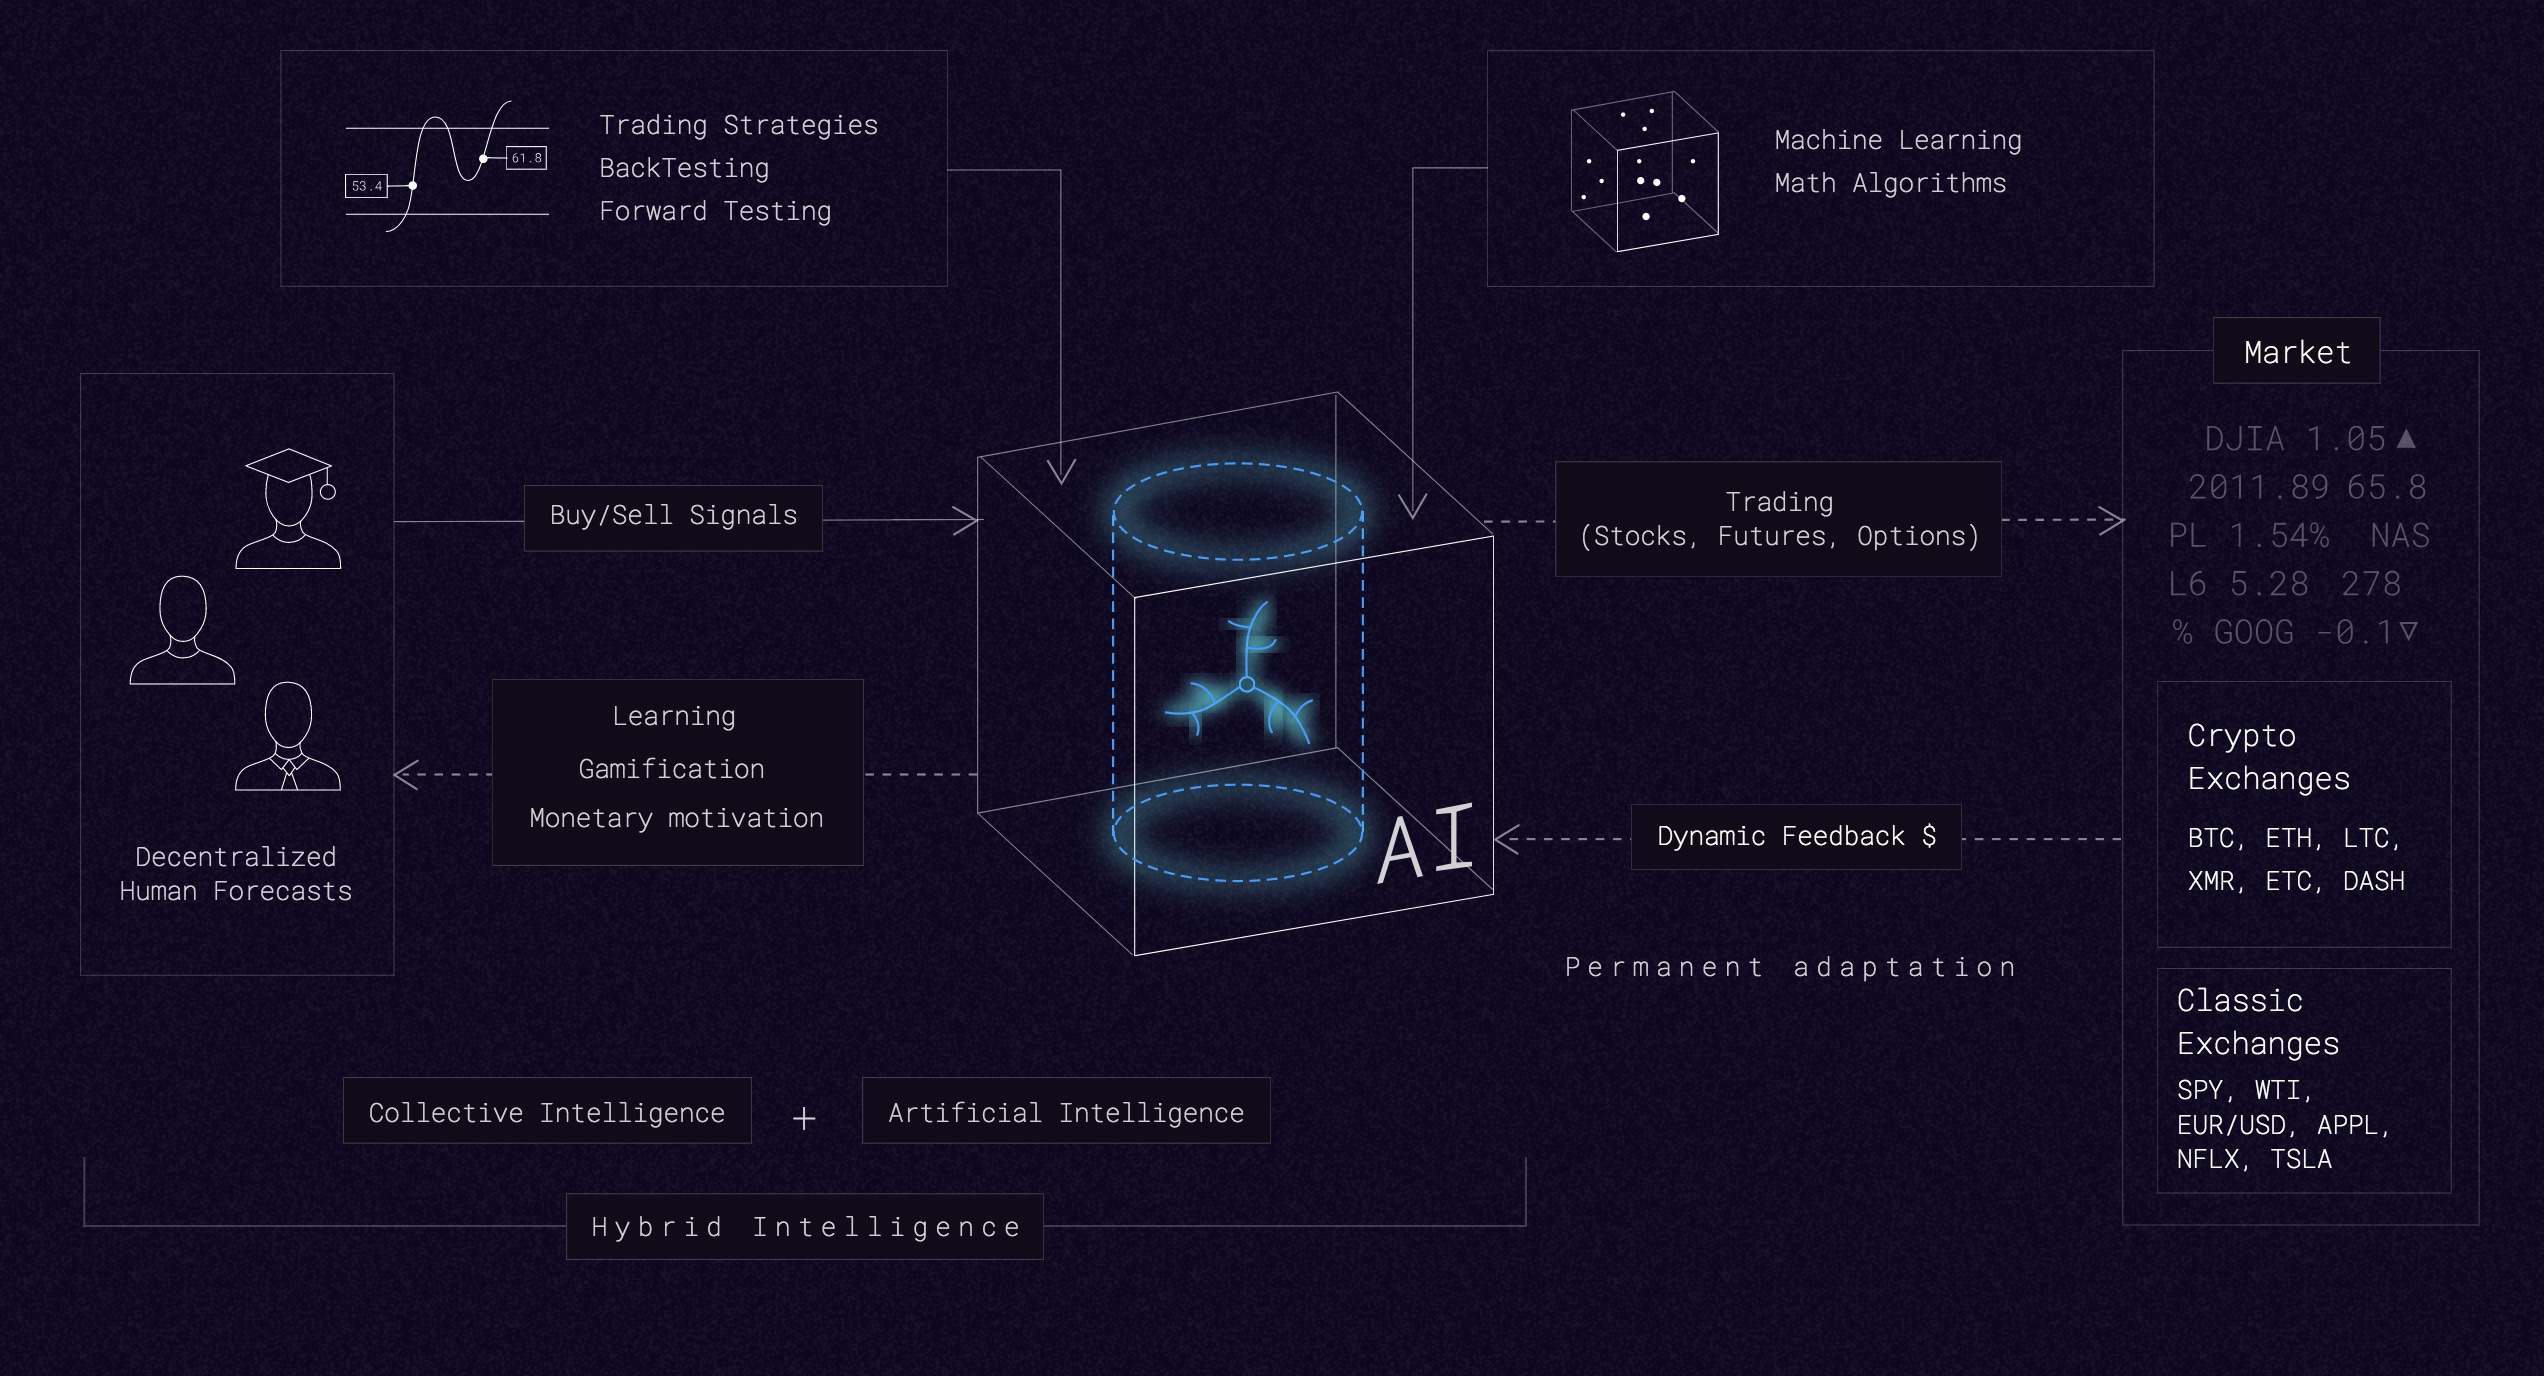 The synergy of artificial and collective intelligence Cindicator